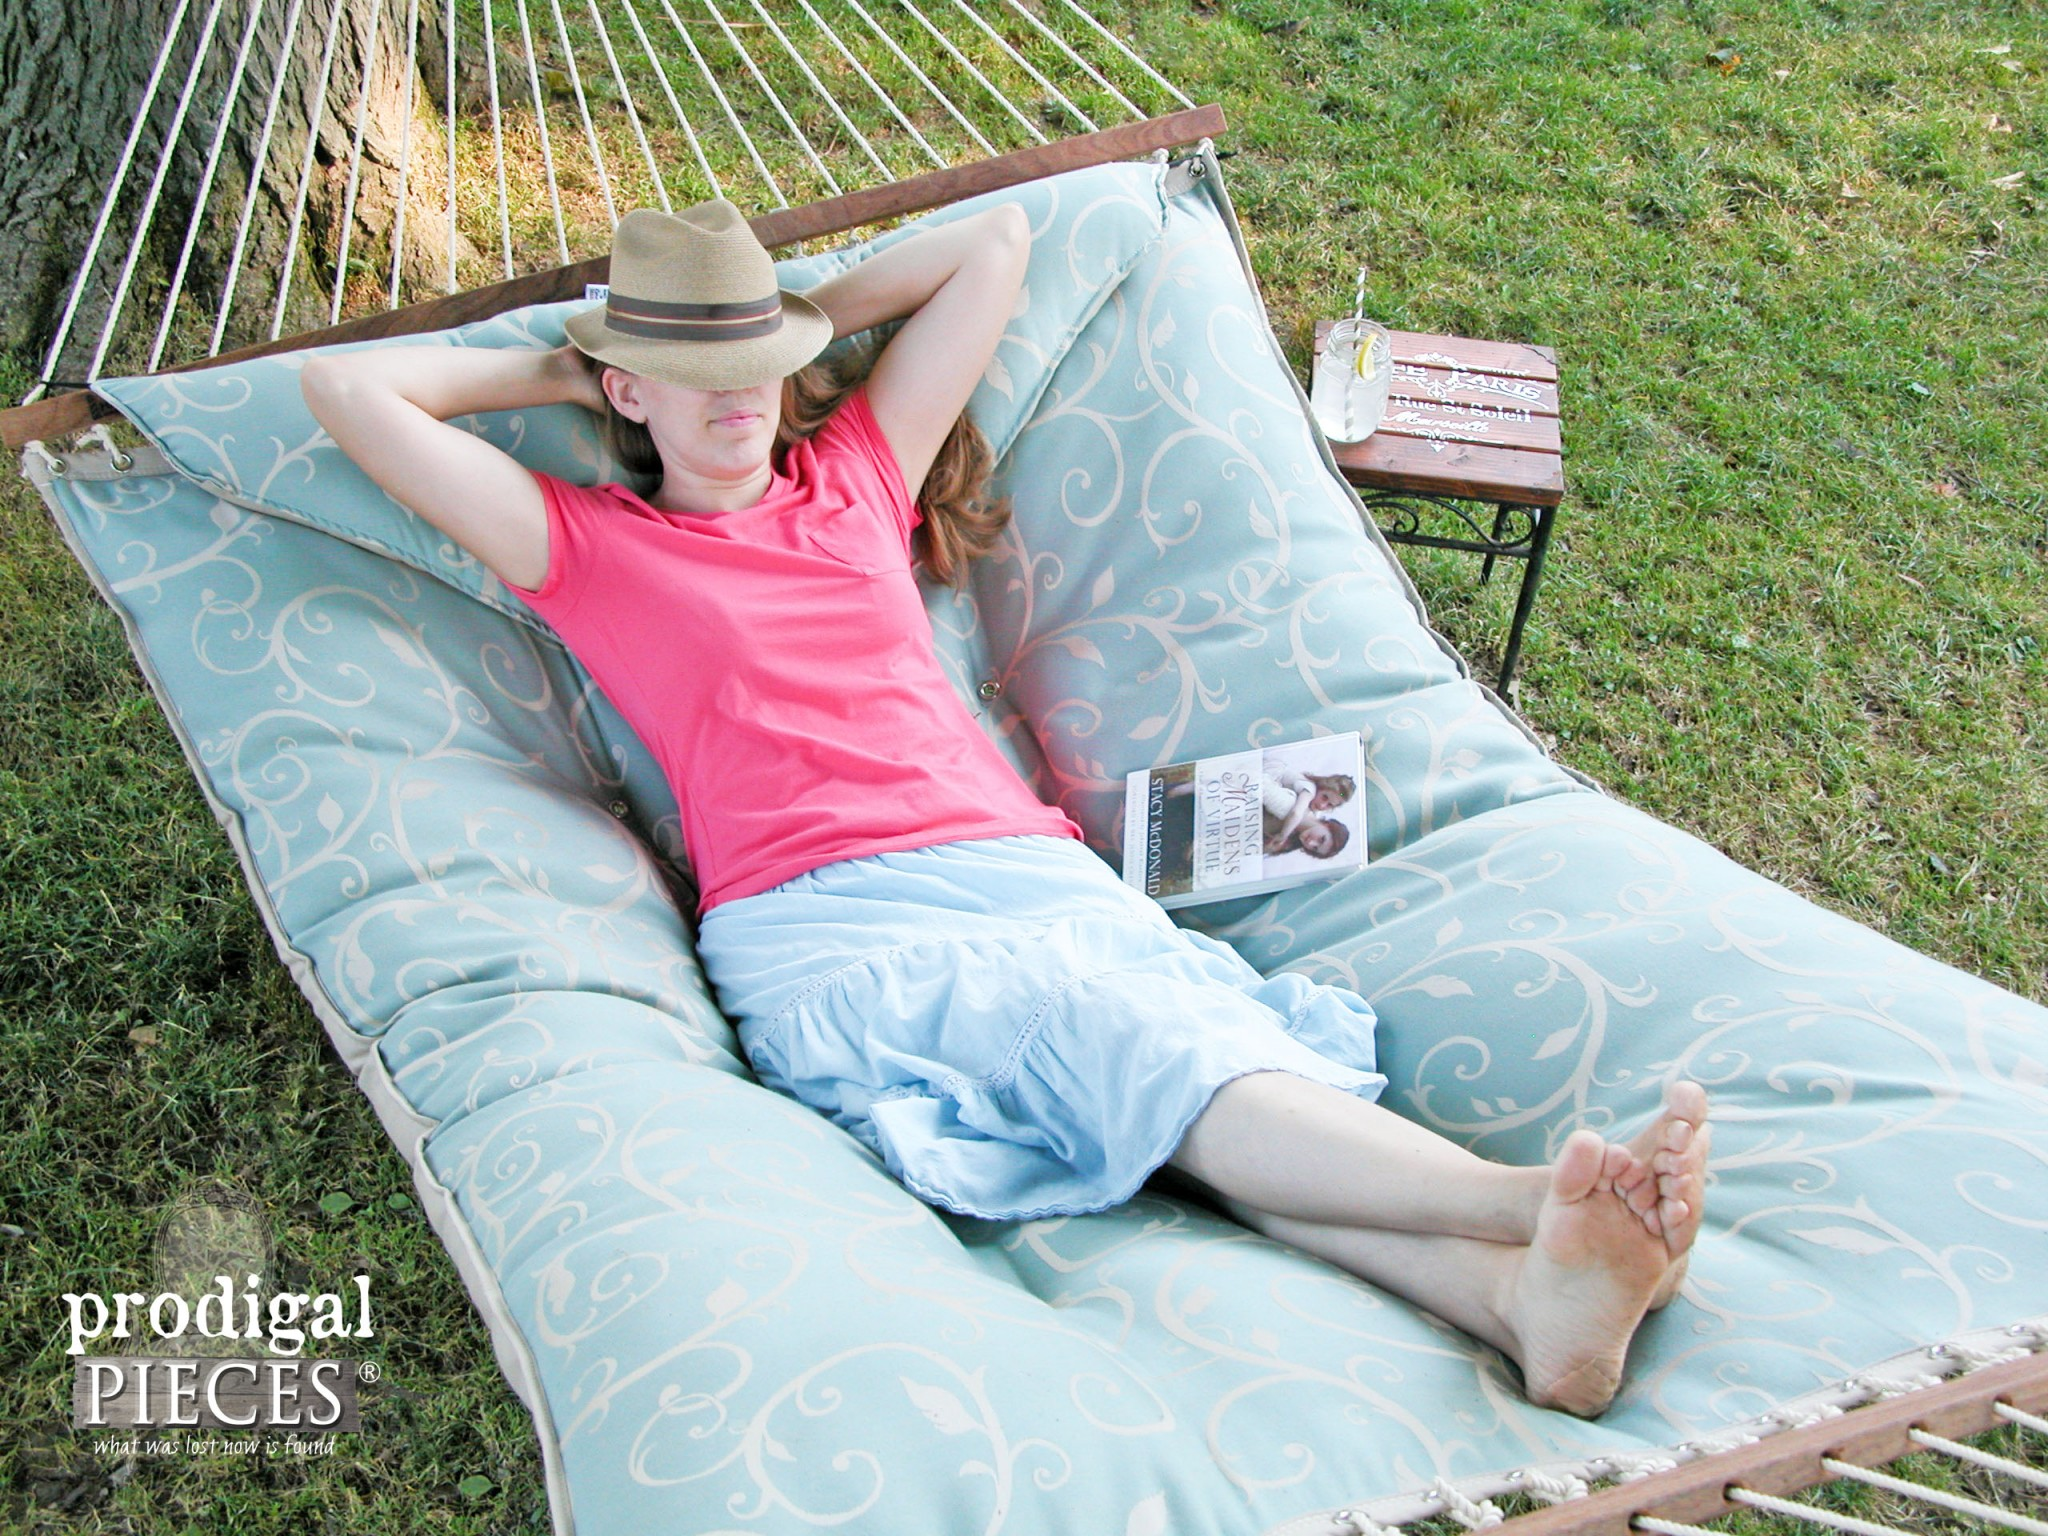 Hatteras Hammocks Tufted Hammock from DFO Home by Prodigal Pieces | www.prodigalpieces.com